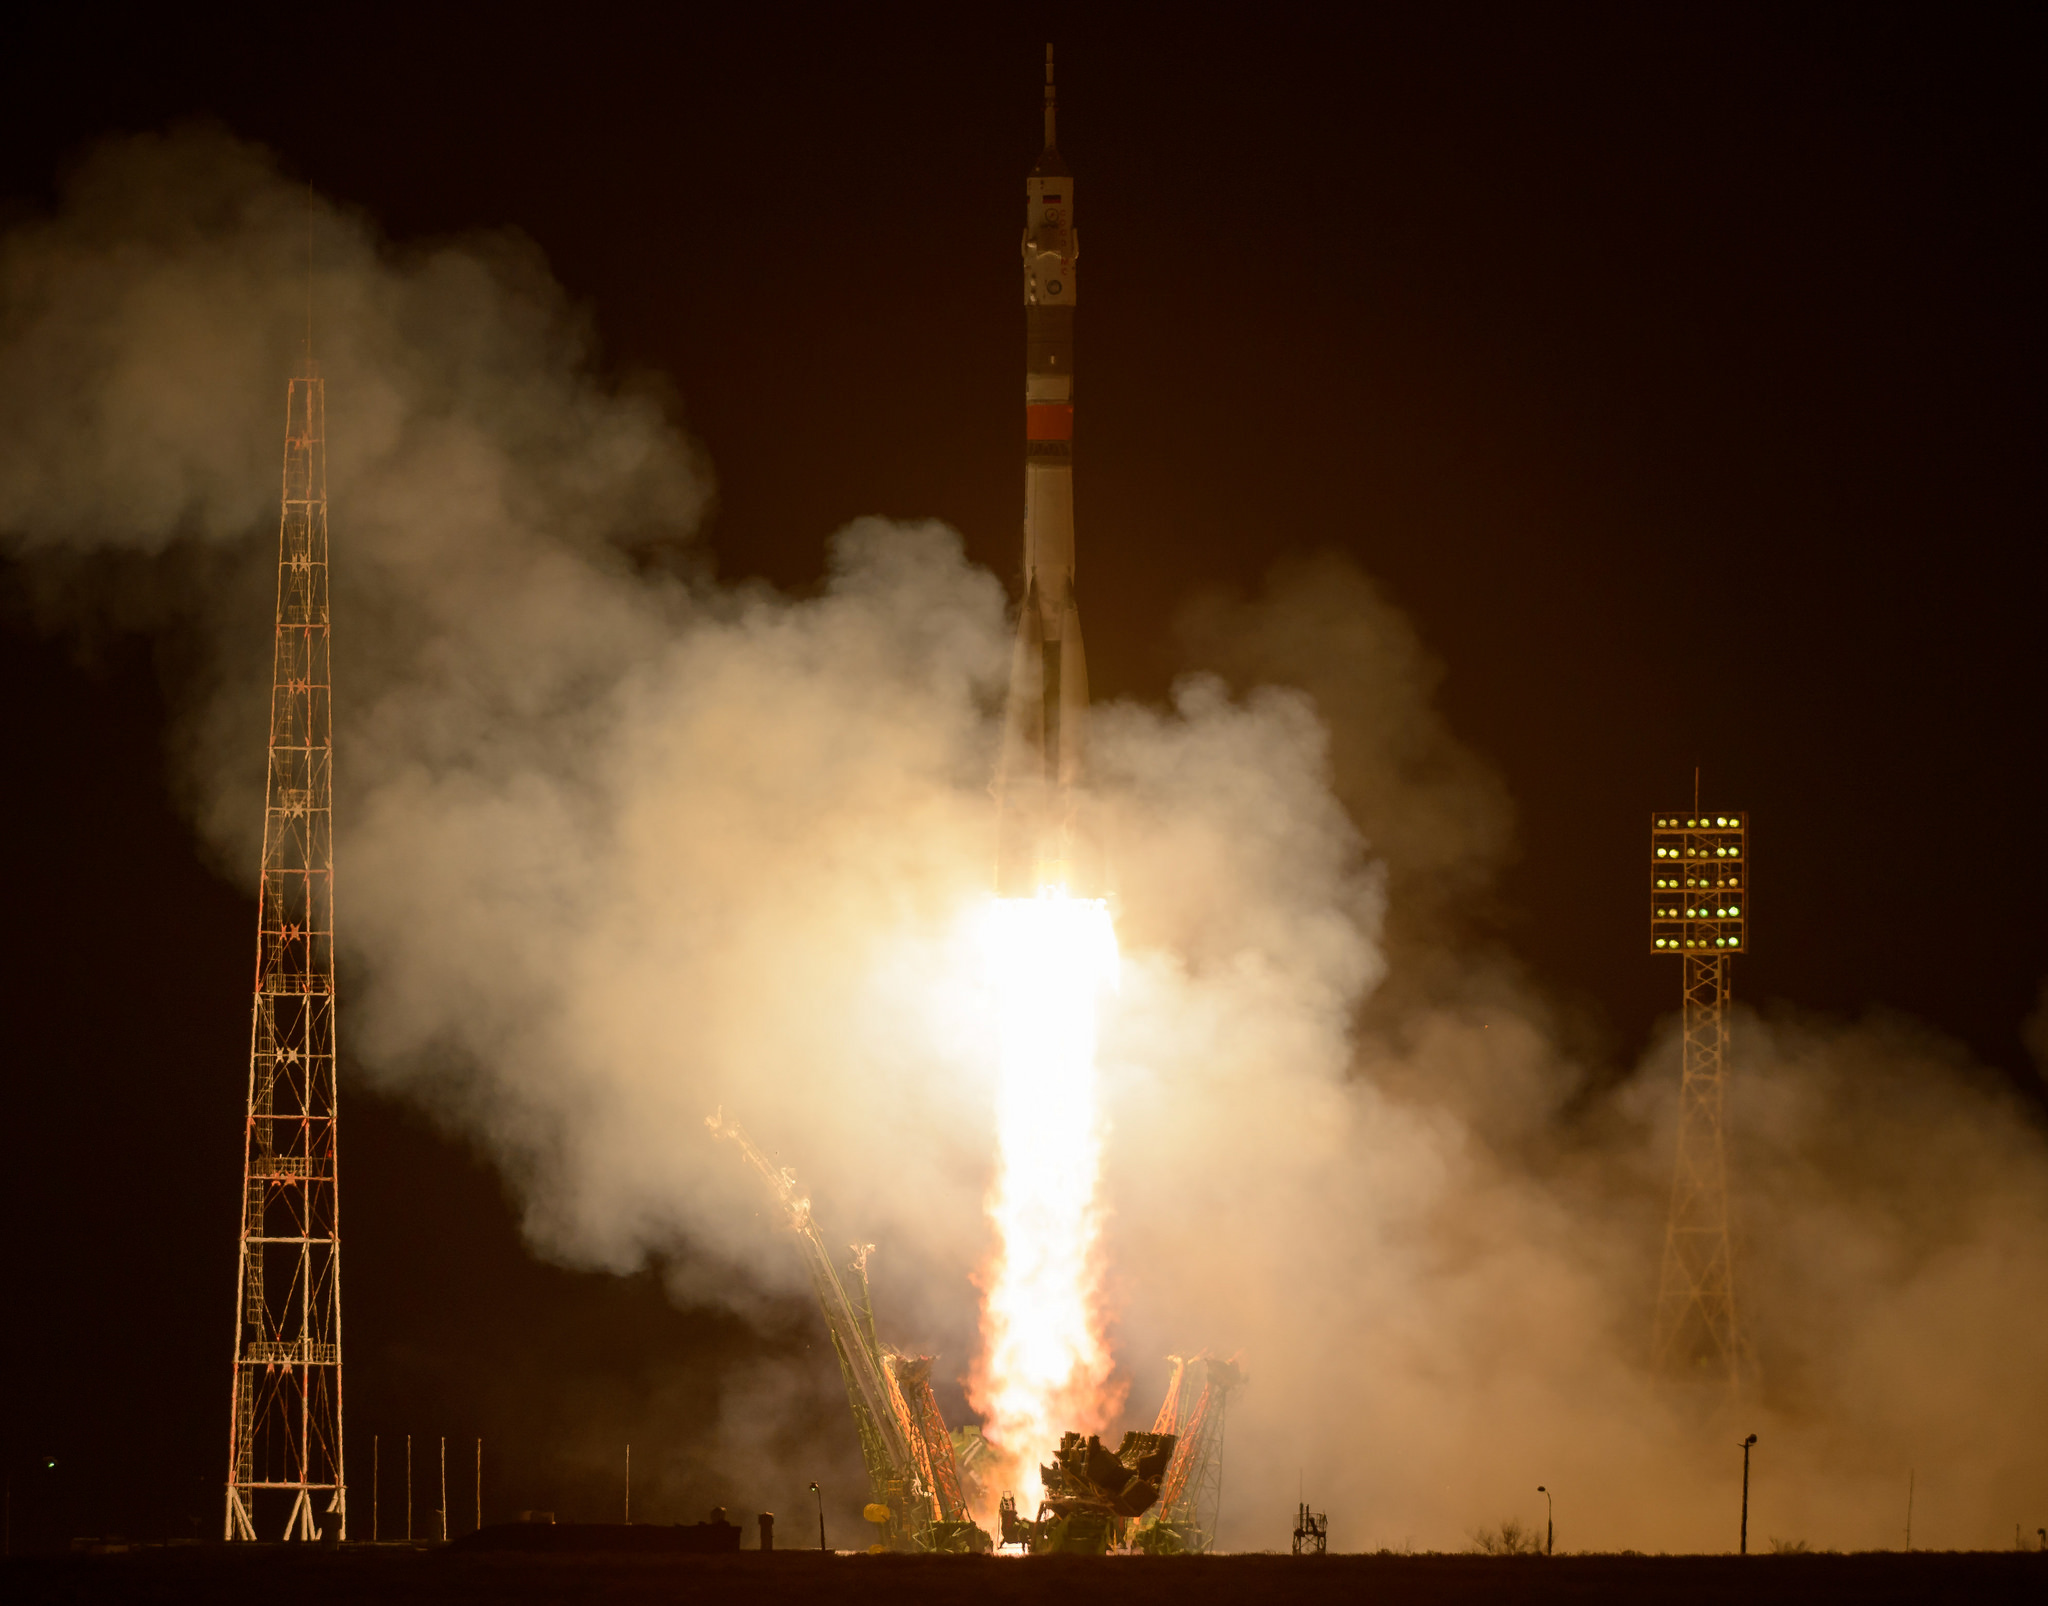 Four crews launching to the ISS